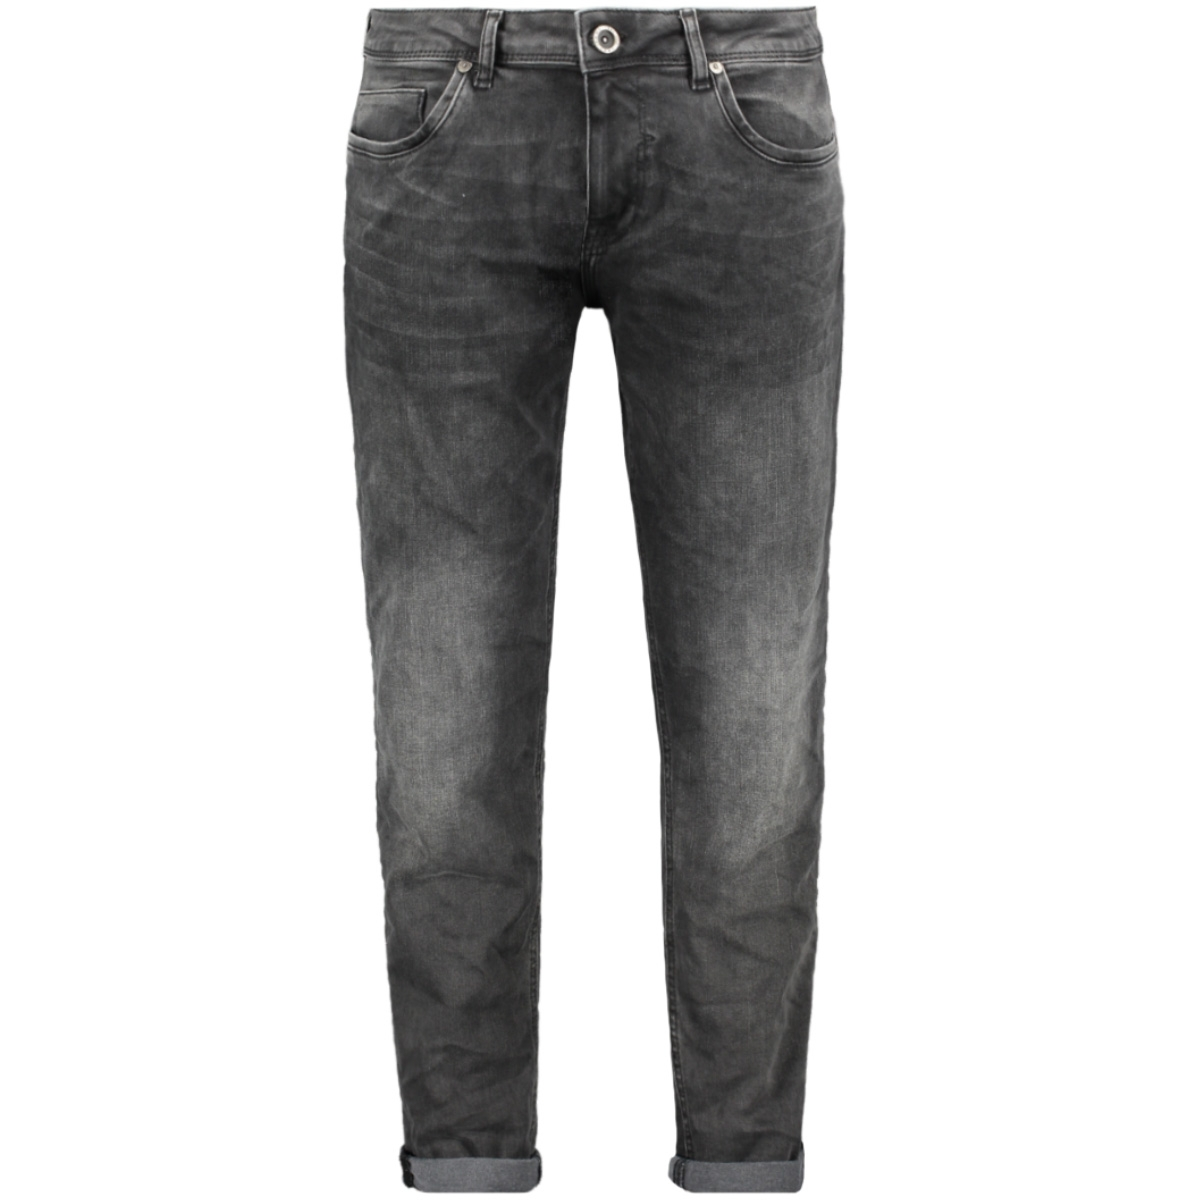 throne denim 7222841 cars jeans black used